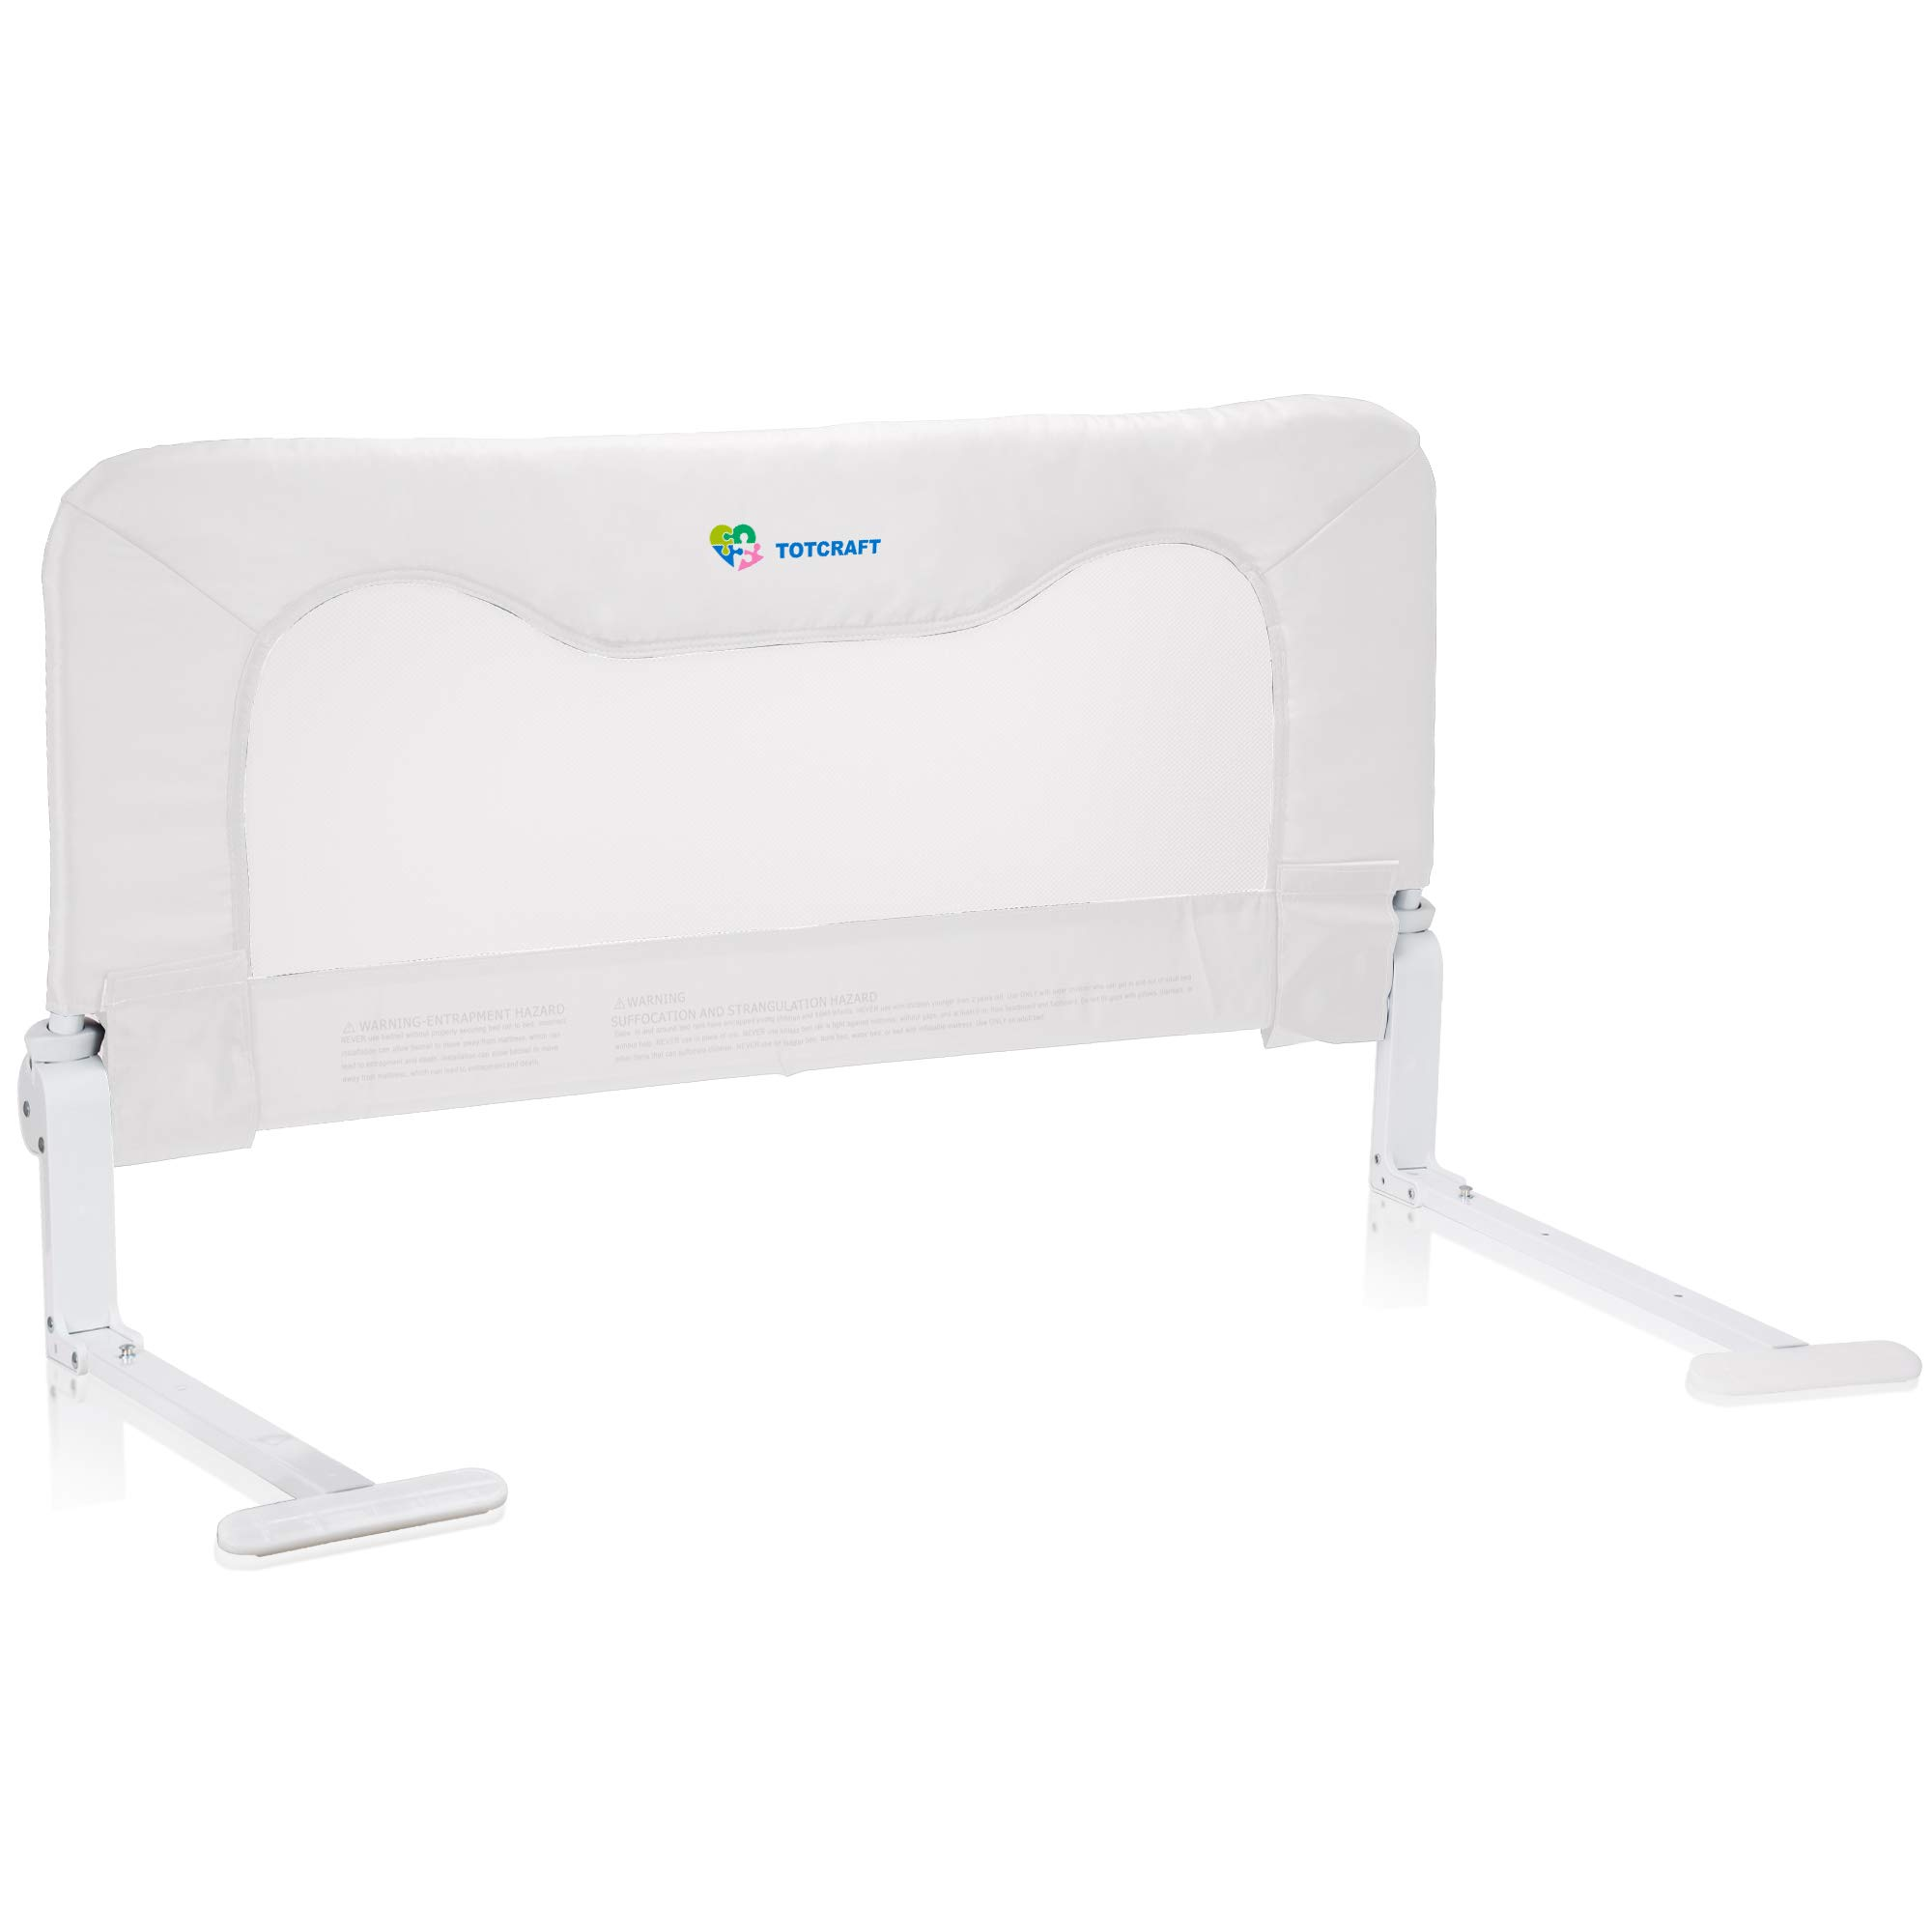 Toddler Bed Rail Guard for Kids– Bed Safety Rail Guard for,Toddlers,Infants –Bed Rails for Toddlers for Queen & King Bed,Twin Bed,Twin Mattress,Twins Bed,Queen King Mattress-White (35.5L19.5H in)